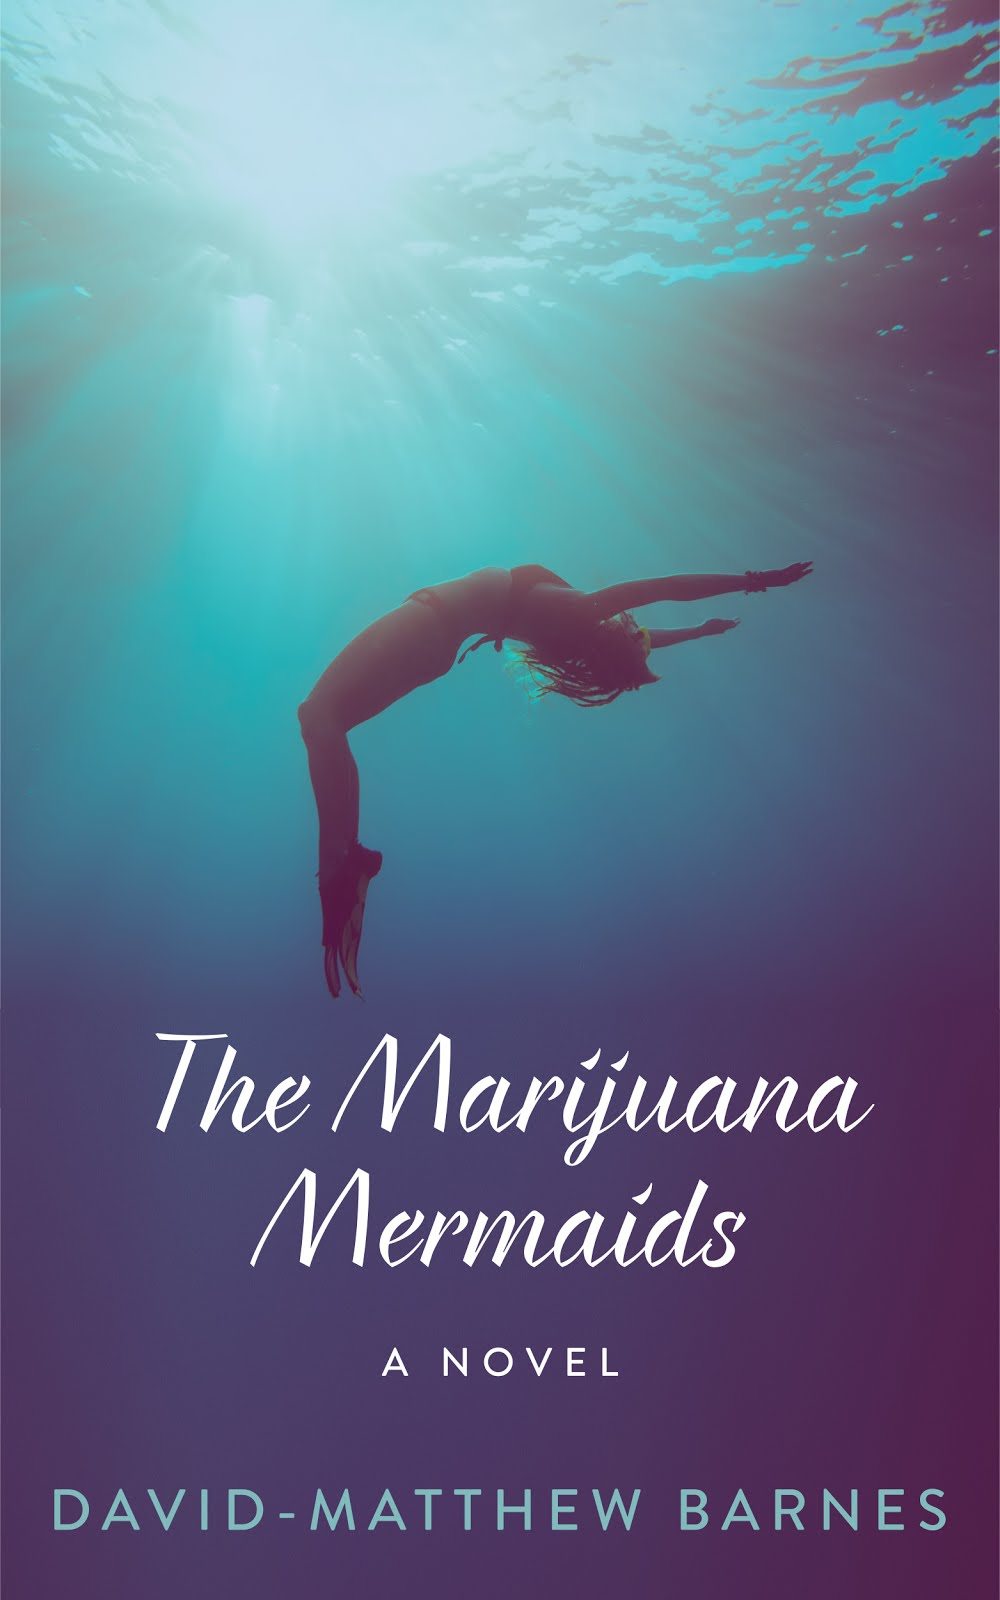 THE MARIJUANA MERMAIDS